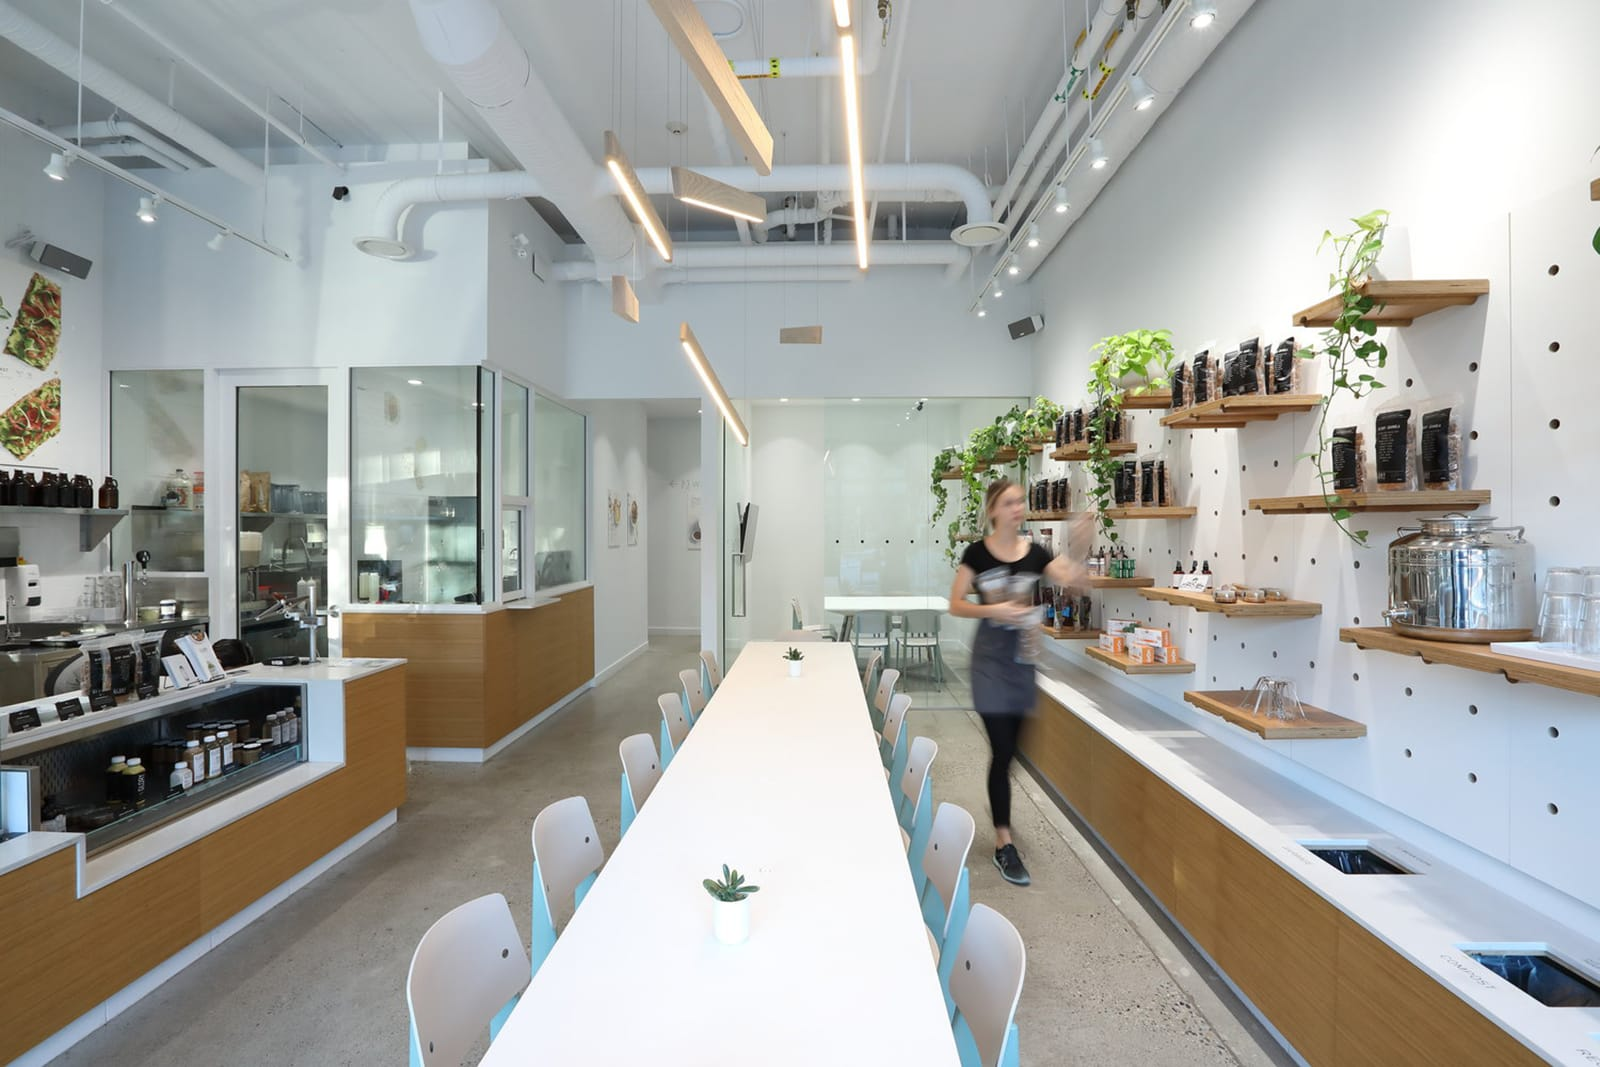 Кафе – бар Glory Juice Lonsdale на севере Ванкувера, Канада от бюро Mcfarlane Green Biggar Architecture + Design, HQ architecture, HQarch, HQ arch, high quality architecture